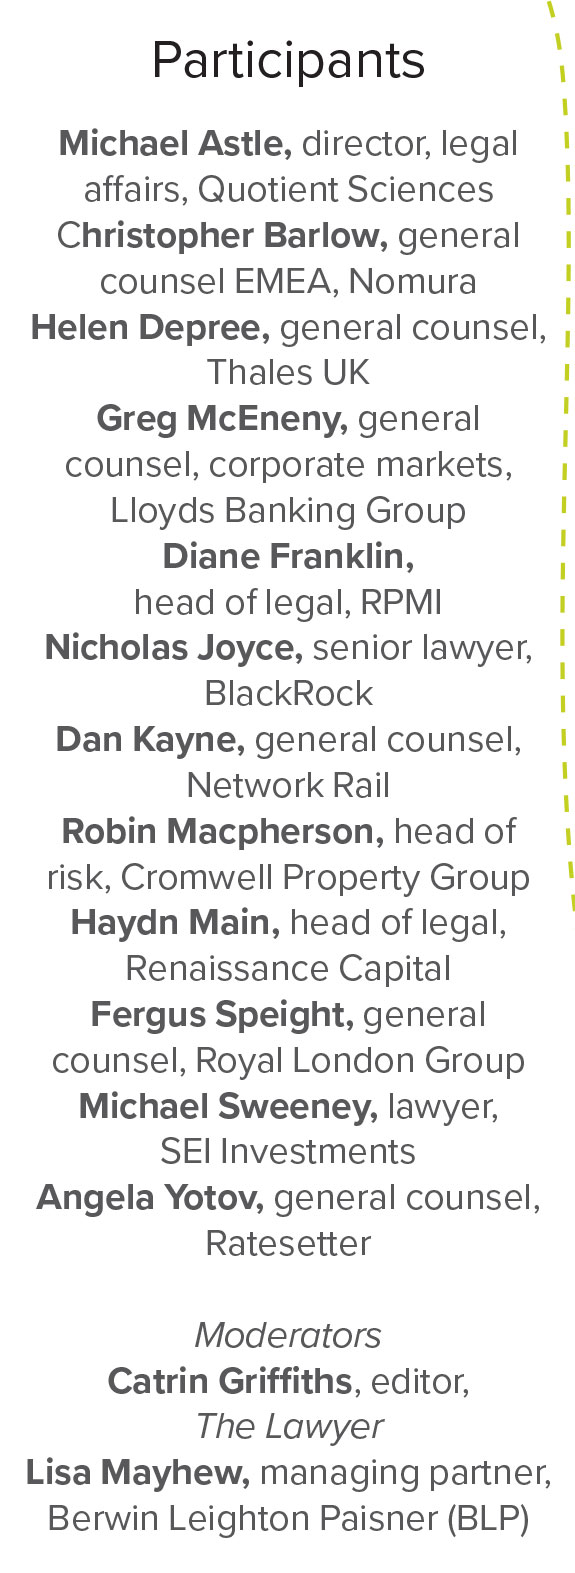 List of participants in GC2B initiative by The Lawyer and Berwin Leighton Paisner